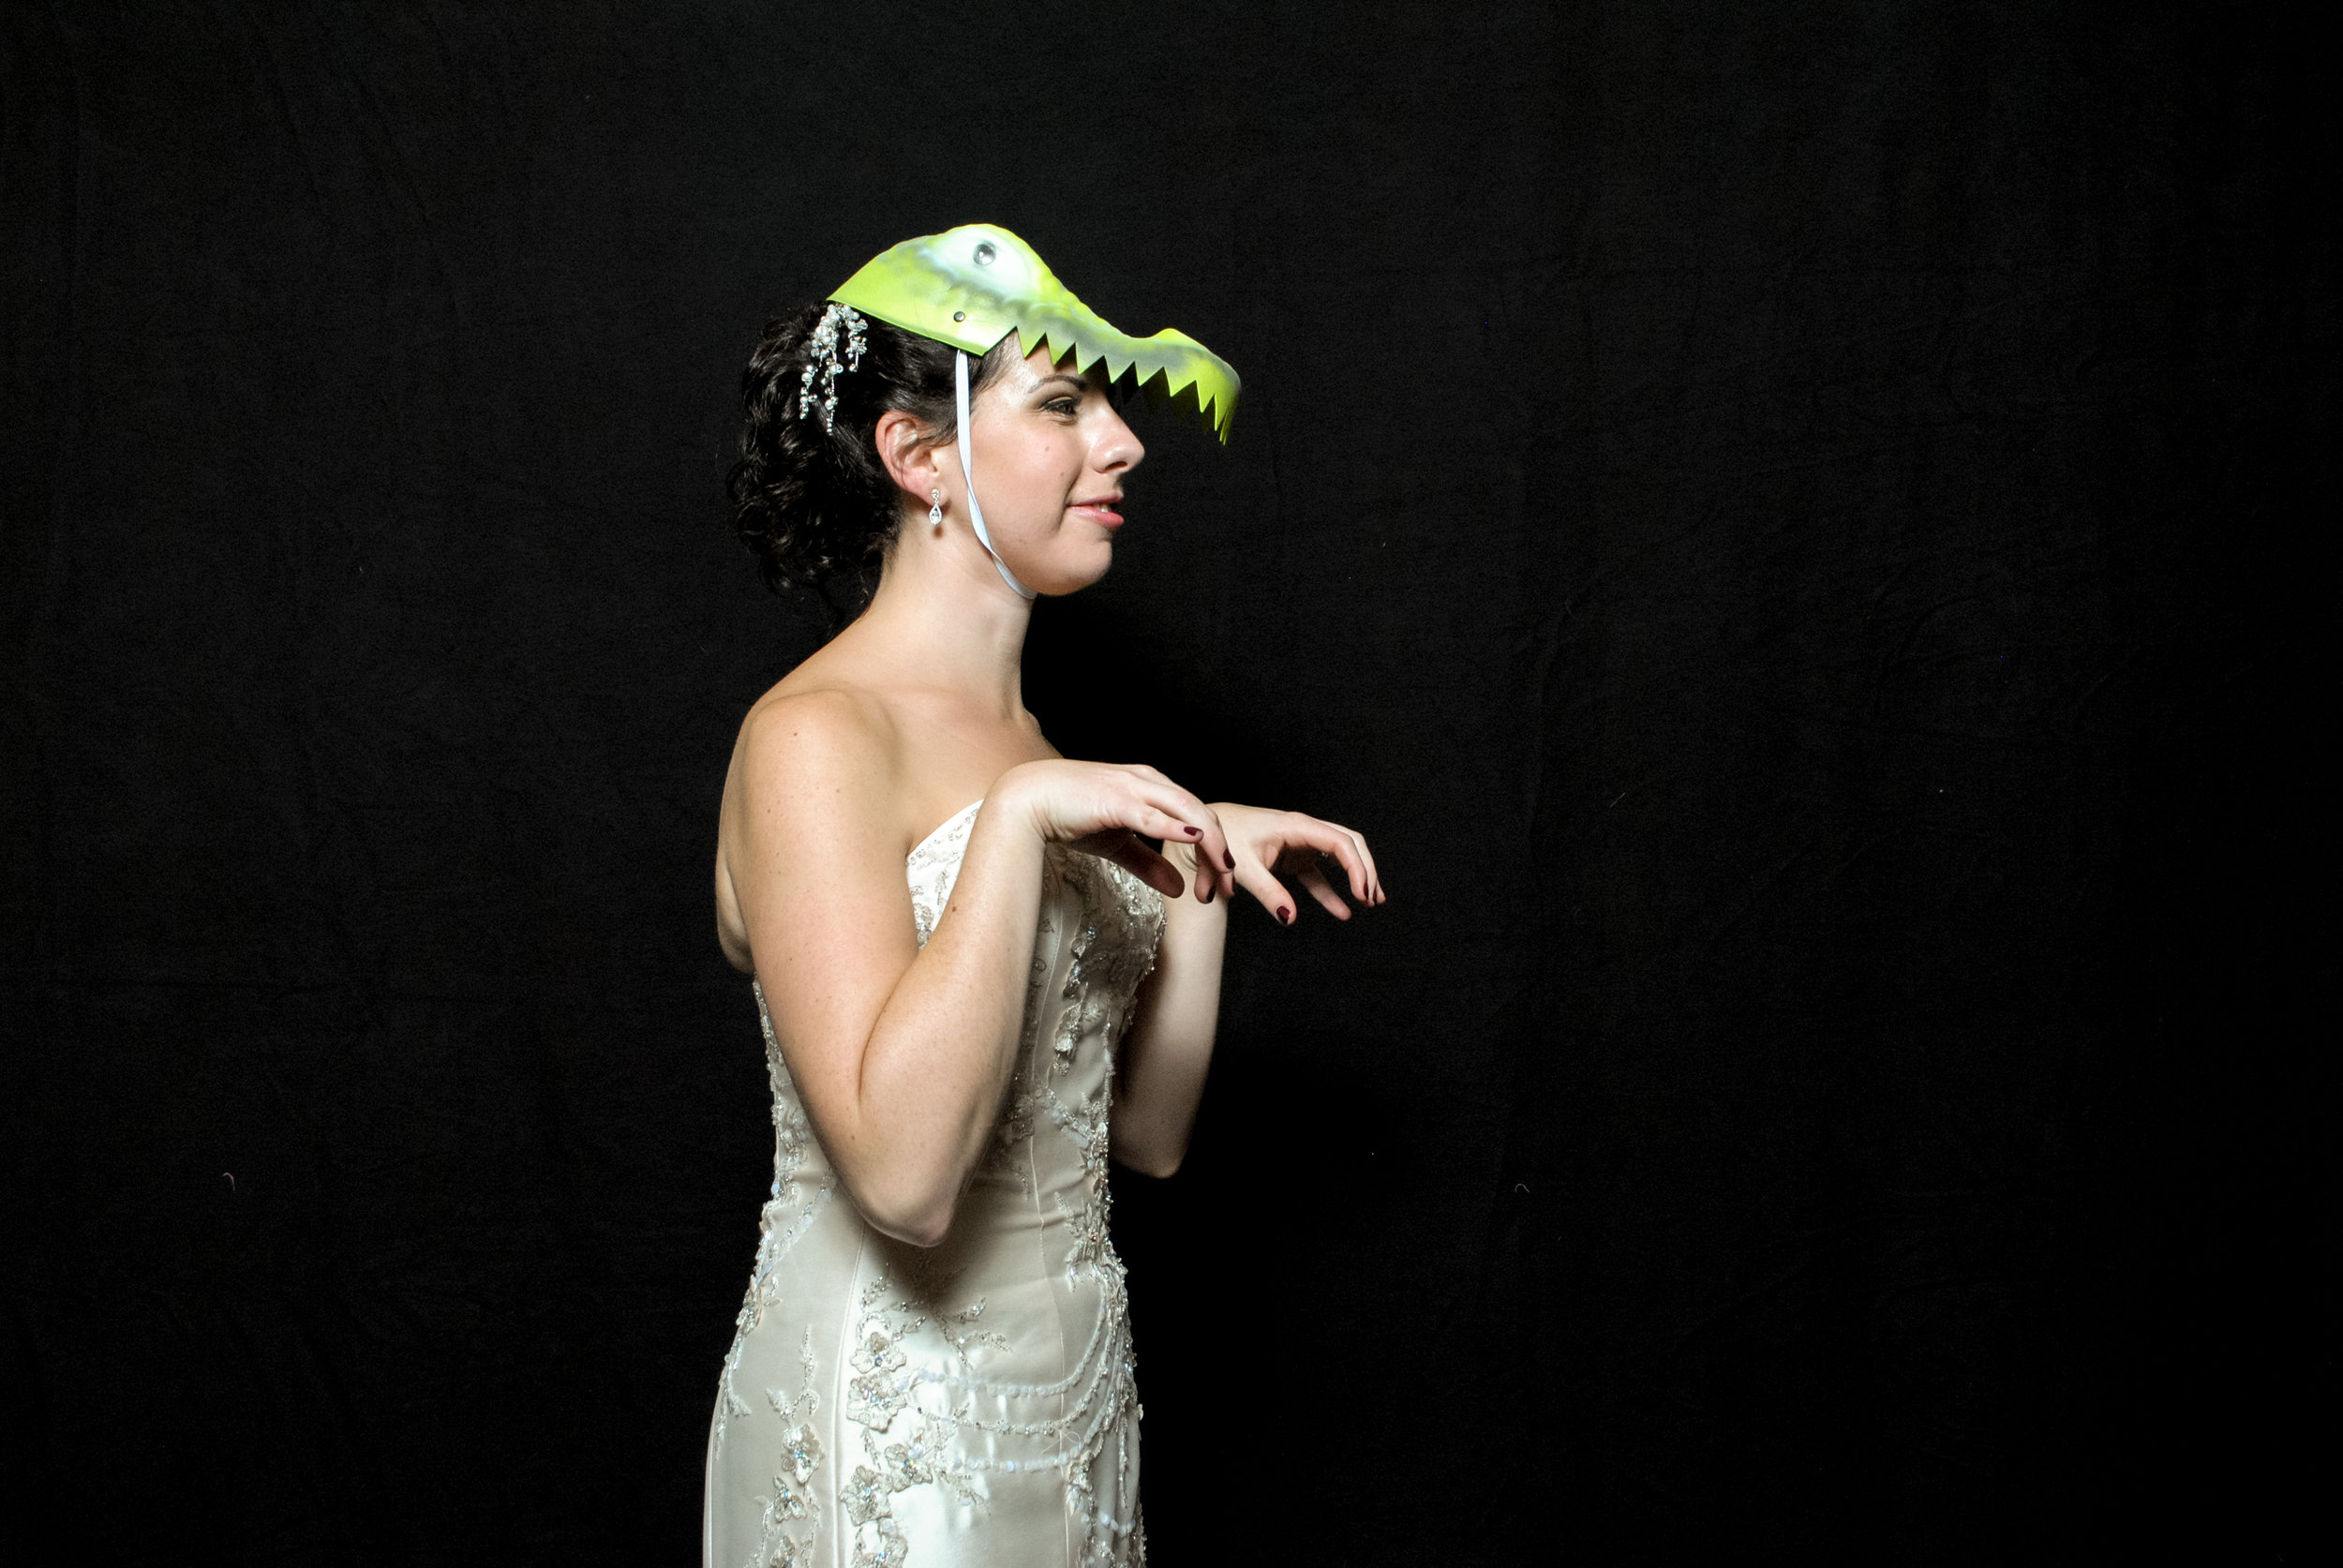 My nickname is T Rex due to my withered, vestigial forelegs. (Aka I can't do pushups.) Even on my wedding this proved true!